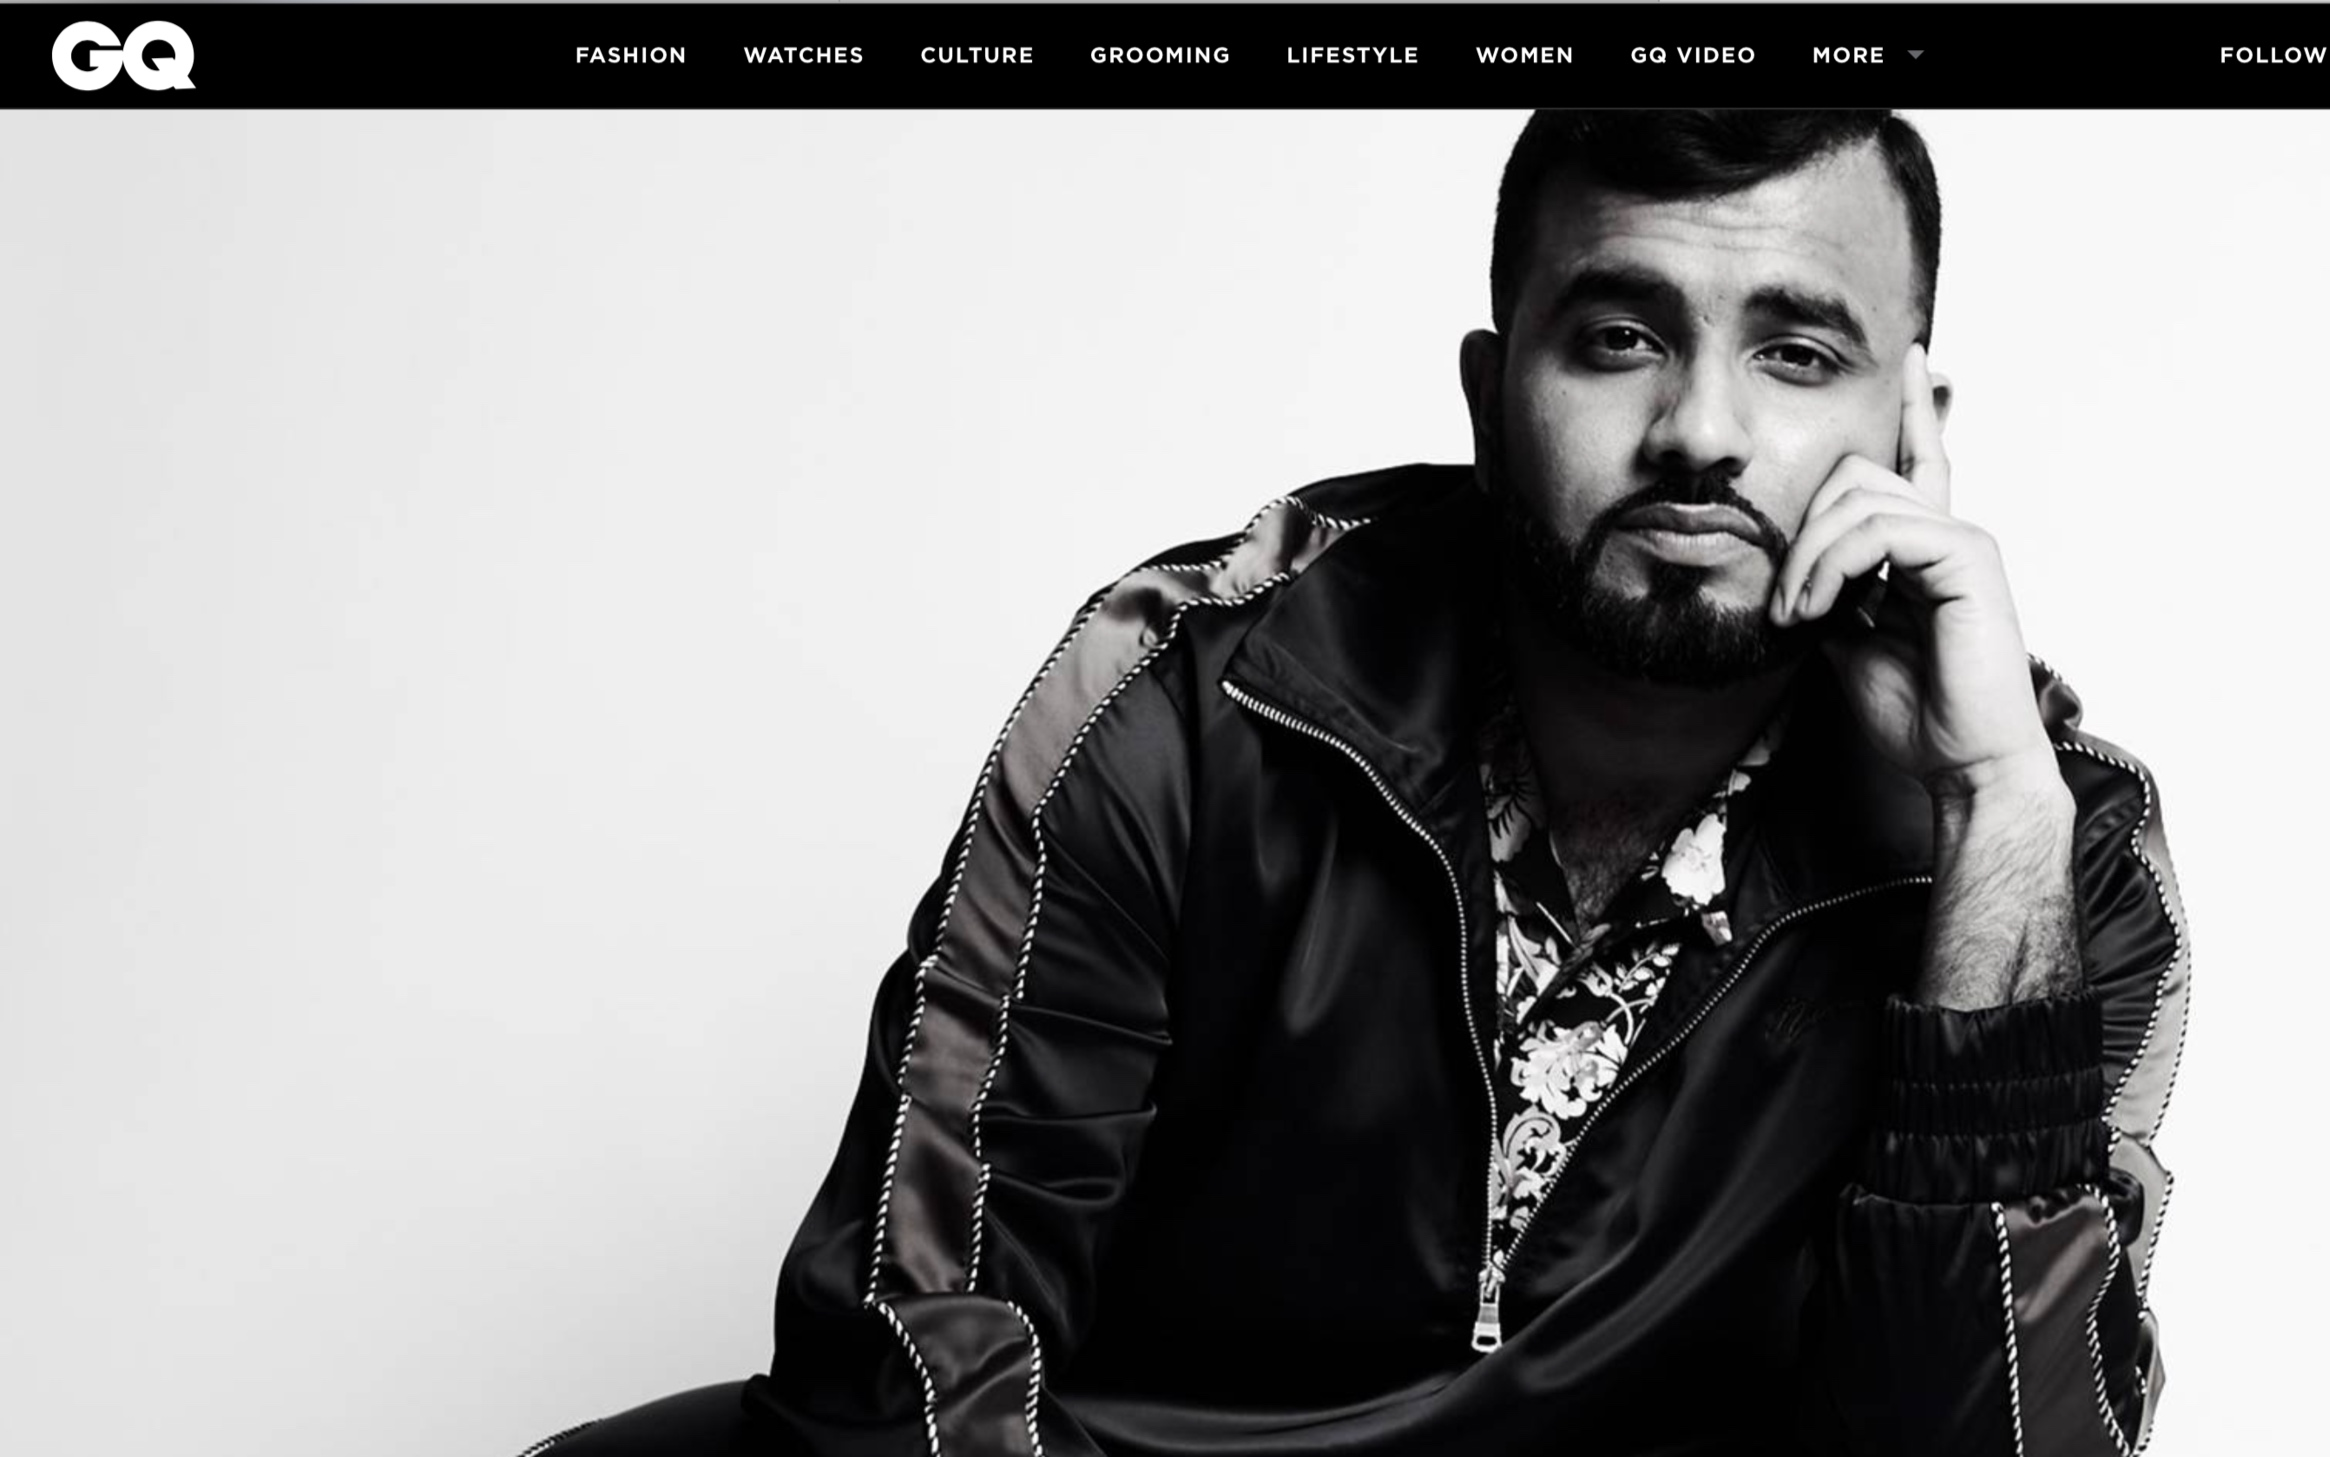 GQ Magazine - Hussain Manawer on losing his mum, suicidal thoughts and finding gold dust in the darkest hour.